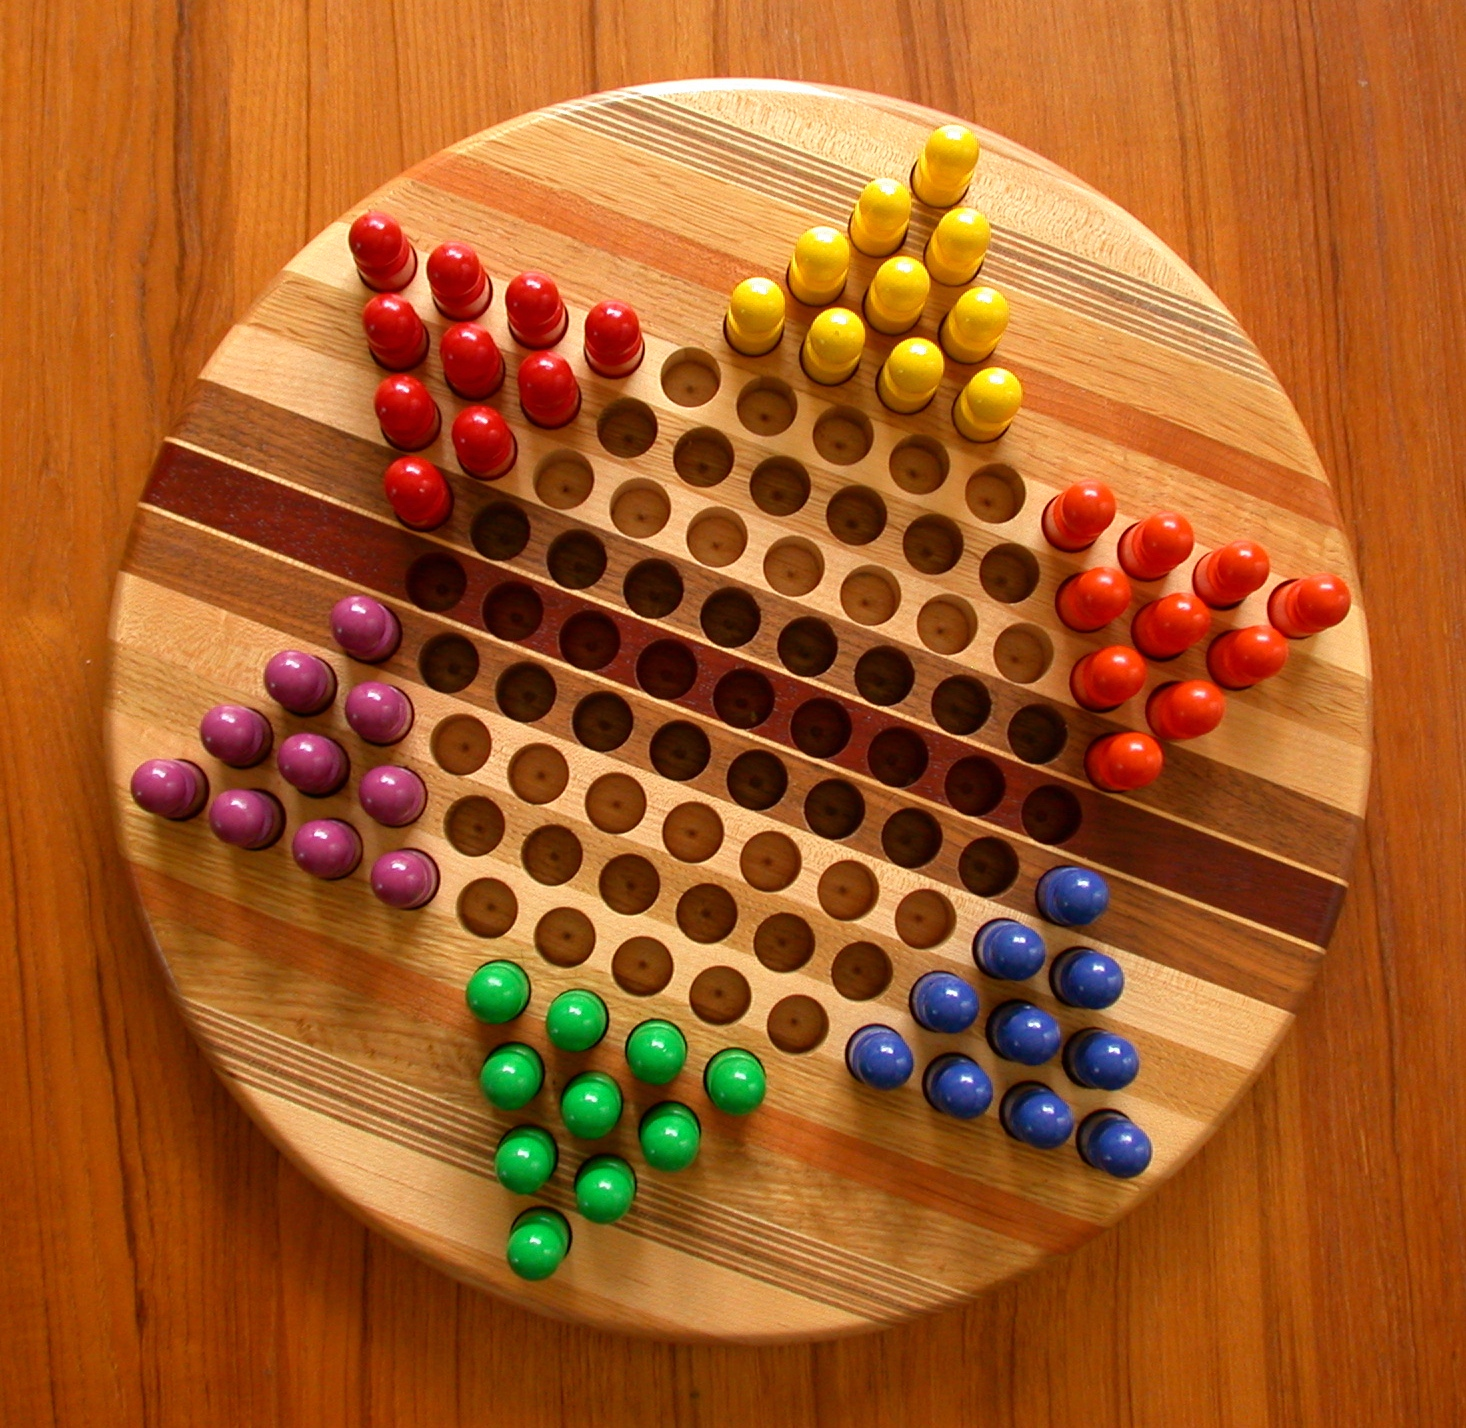 Chinese Checkers Flickr Photo Sharing